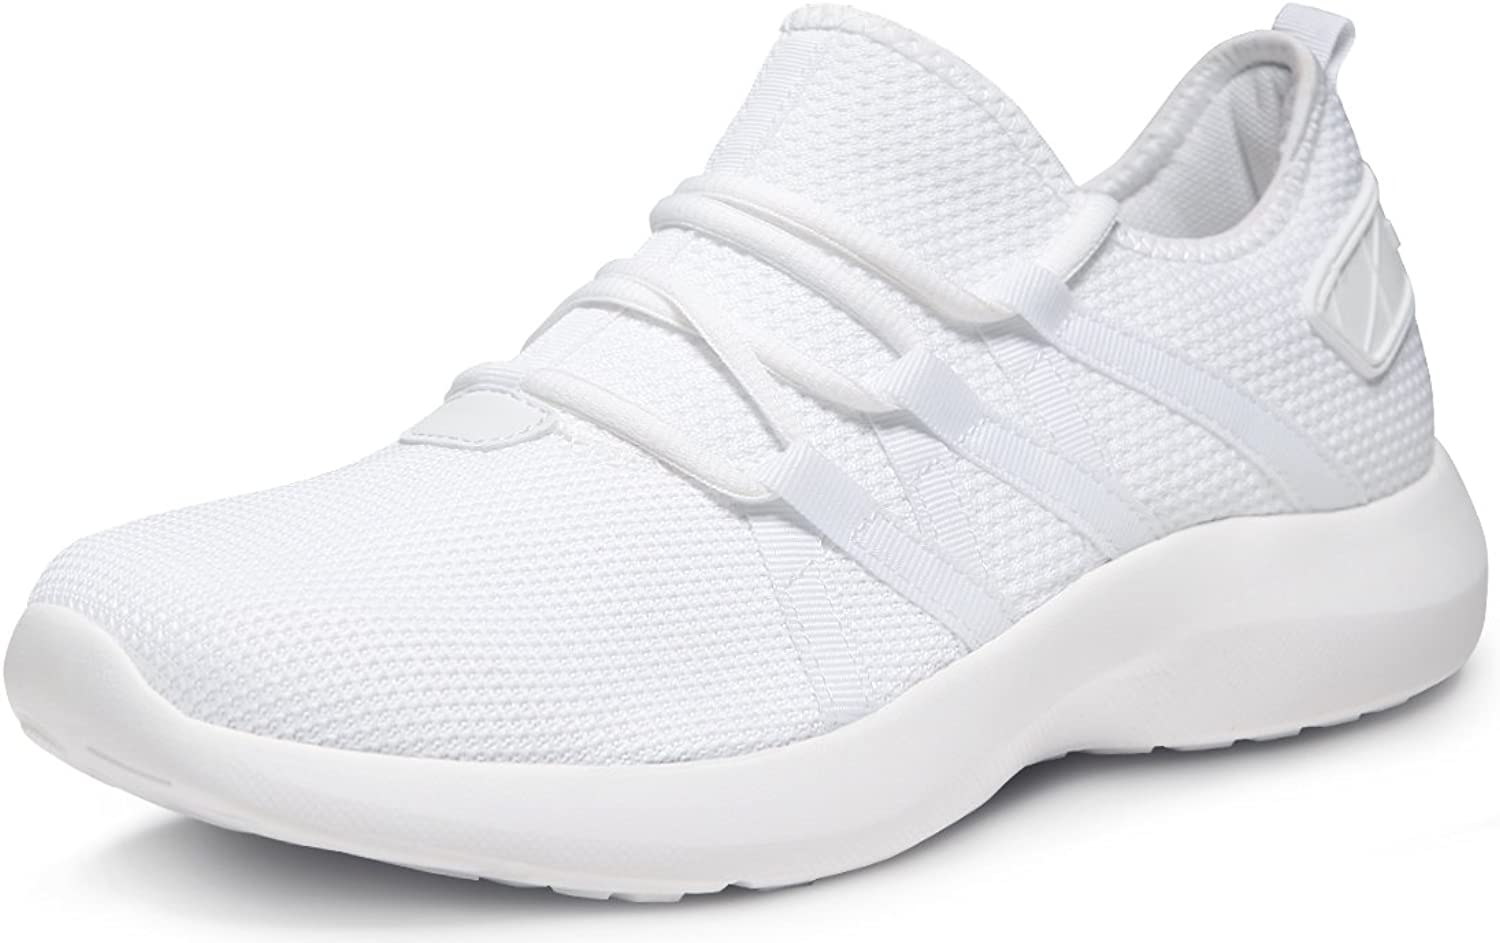 TF-X735-WHT_Men 8 D(M) Tesla Unisex Boost Slip-on Design Running Walking Sneakers Performance shoes X735